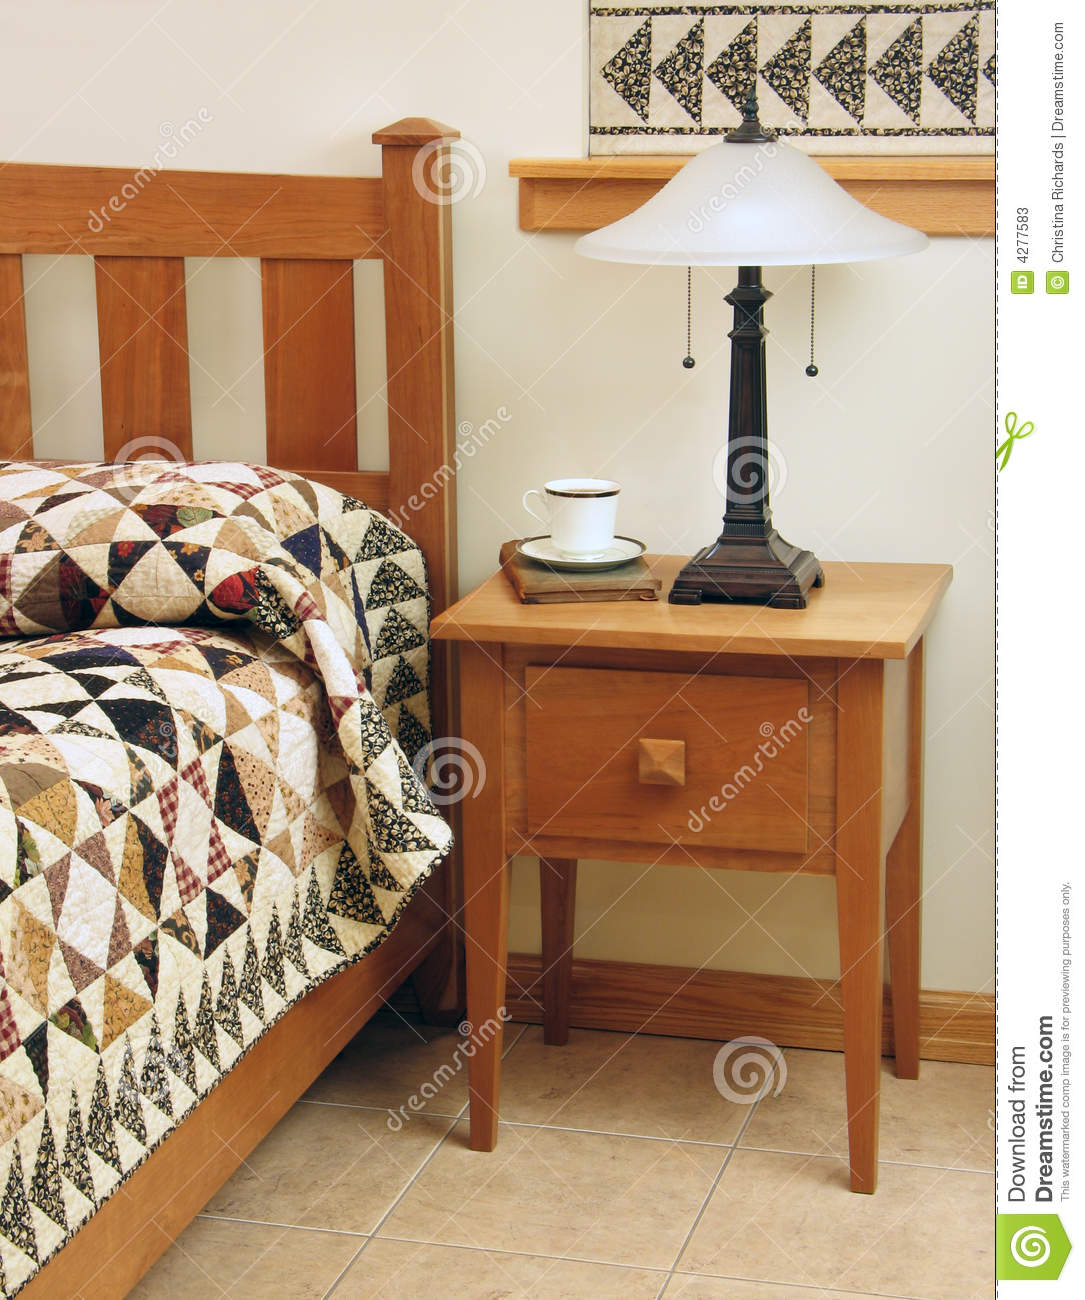 Bedroom With Shaker-style Furniture Stock Photos - Image: 4277583